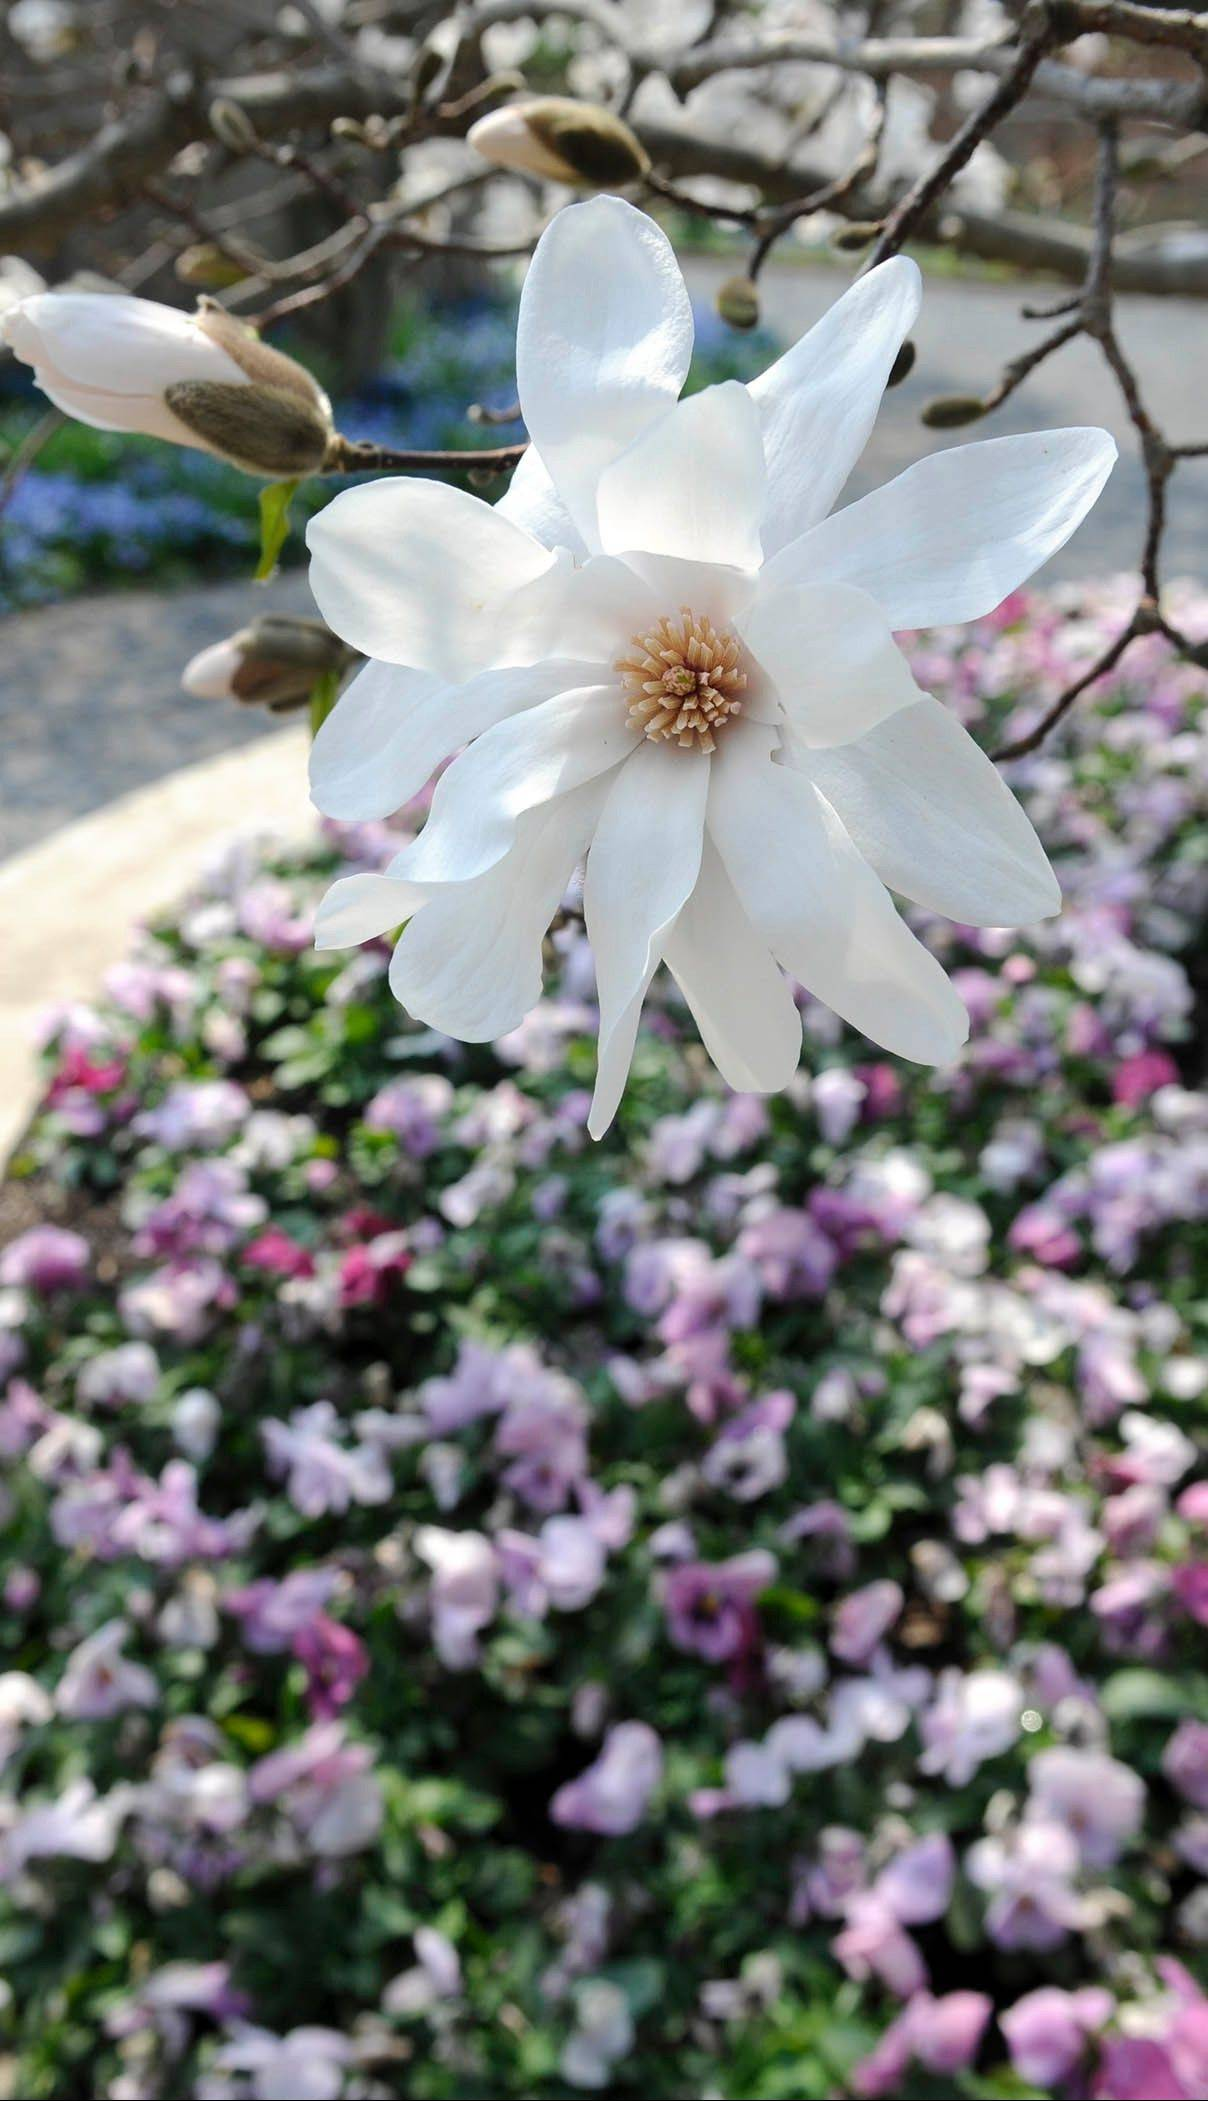 A magnolia in full bloom at the Chicago Botanic Garden. Magnolia trees can be weakened by scale, an insect that exudes a clear honeydew, which allows a fungus to grow on the bark.